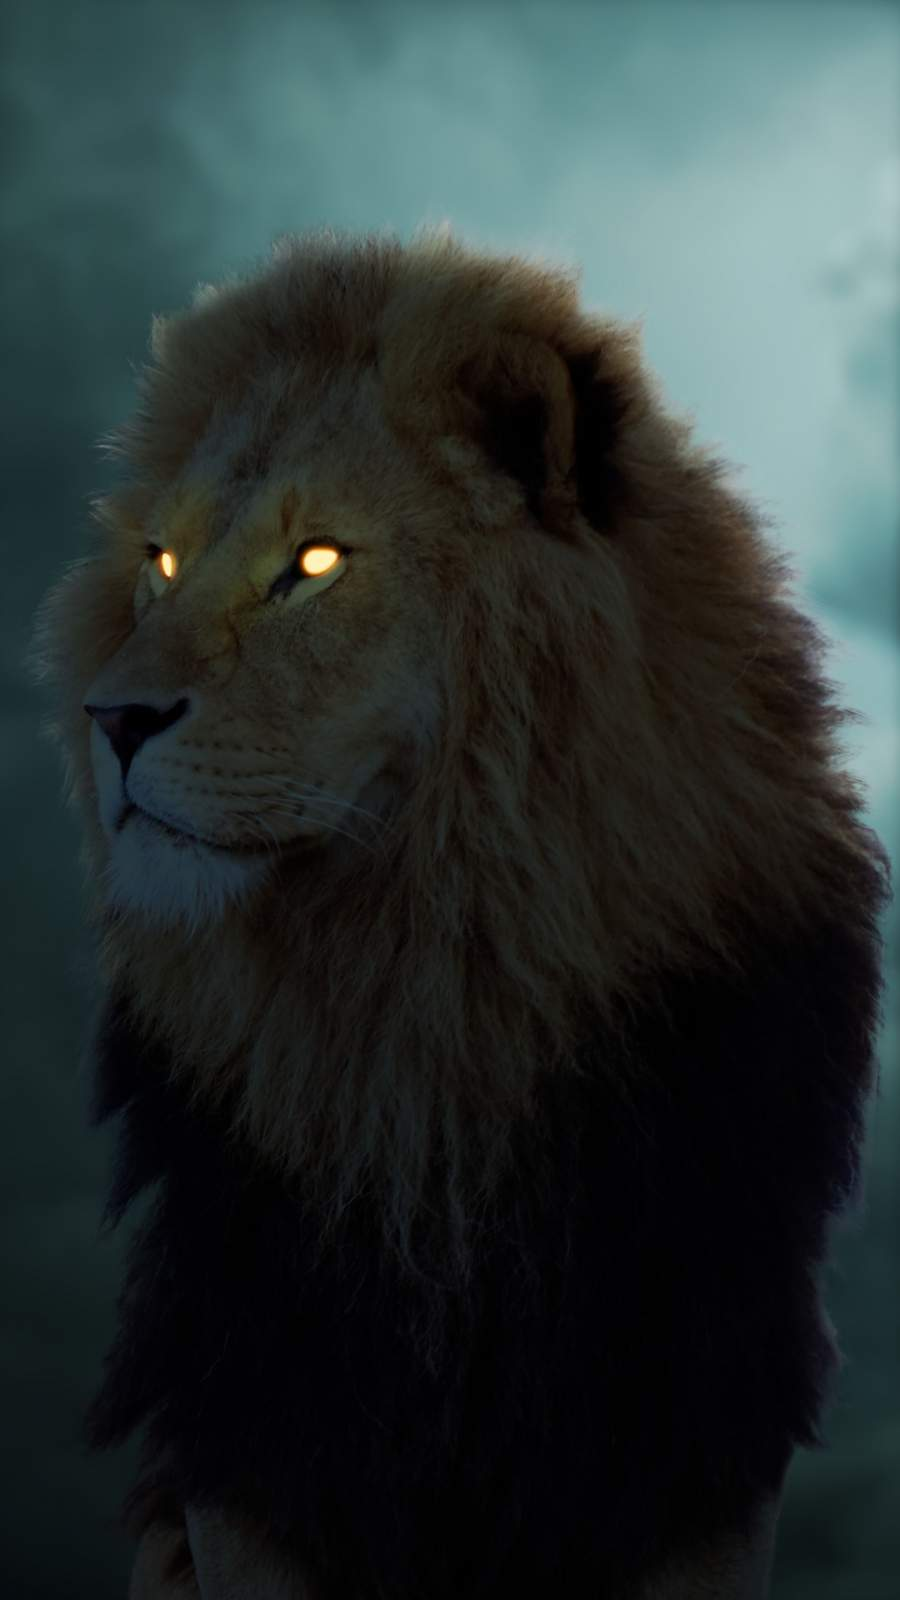 King of the Wild